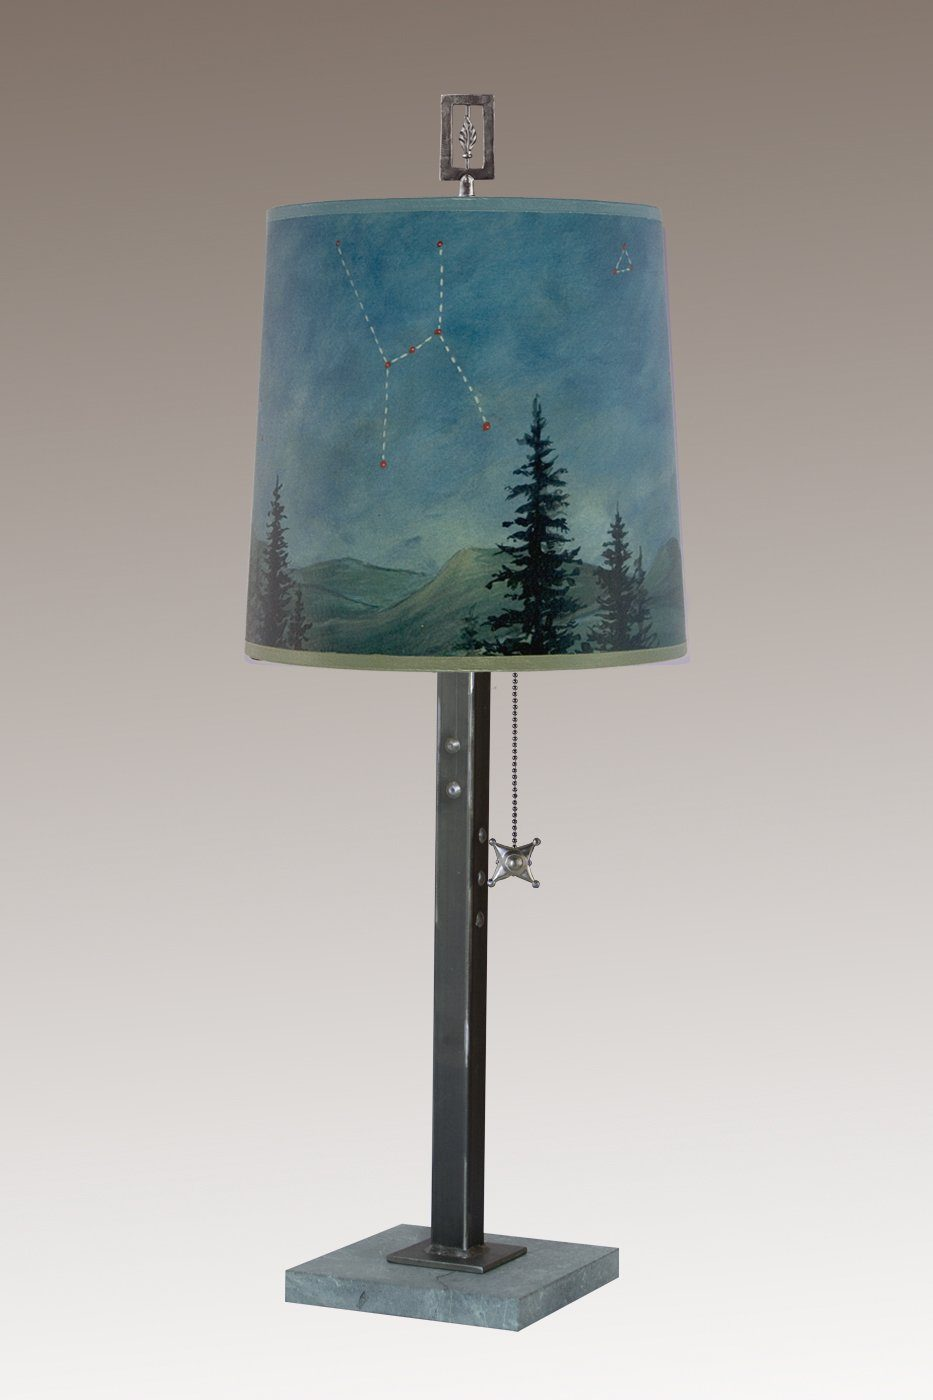 Steel Table Lamp on Marble with Medium Drum Shade in Midnight Sky